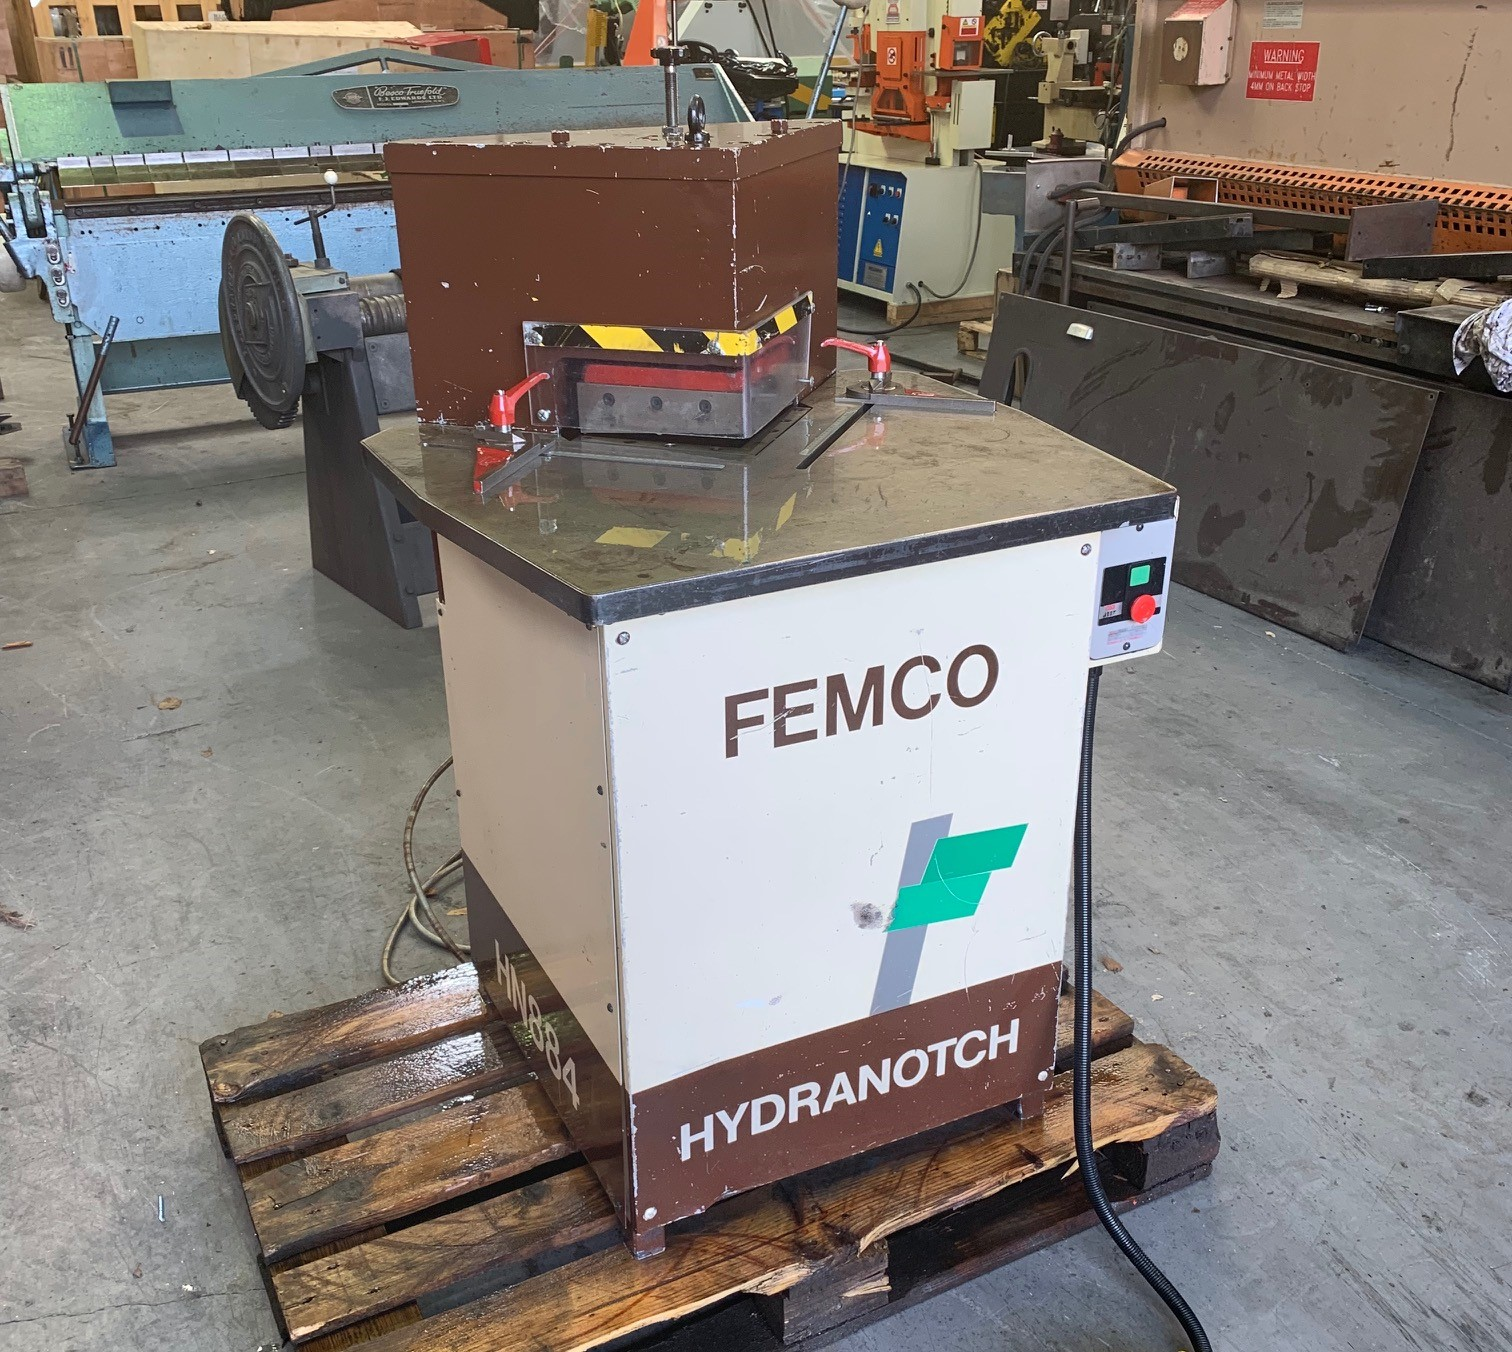 FEMCO 200mm x 4mm Hydraulic corner notcher